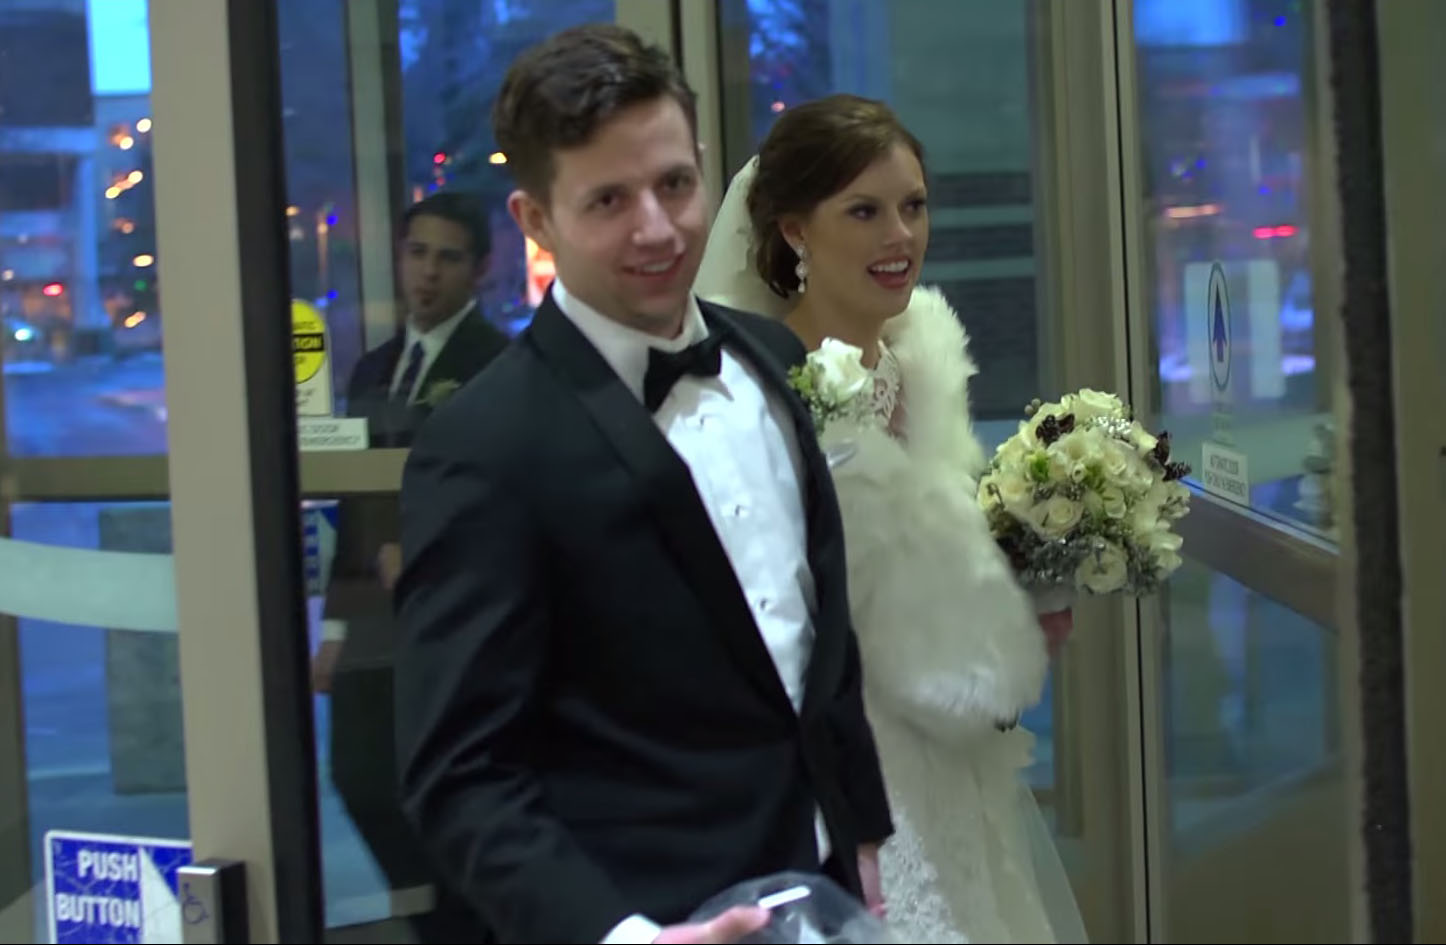 Newlyweds stop by hospital for the CUTEST reason